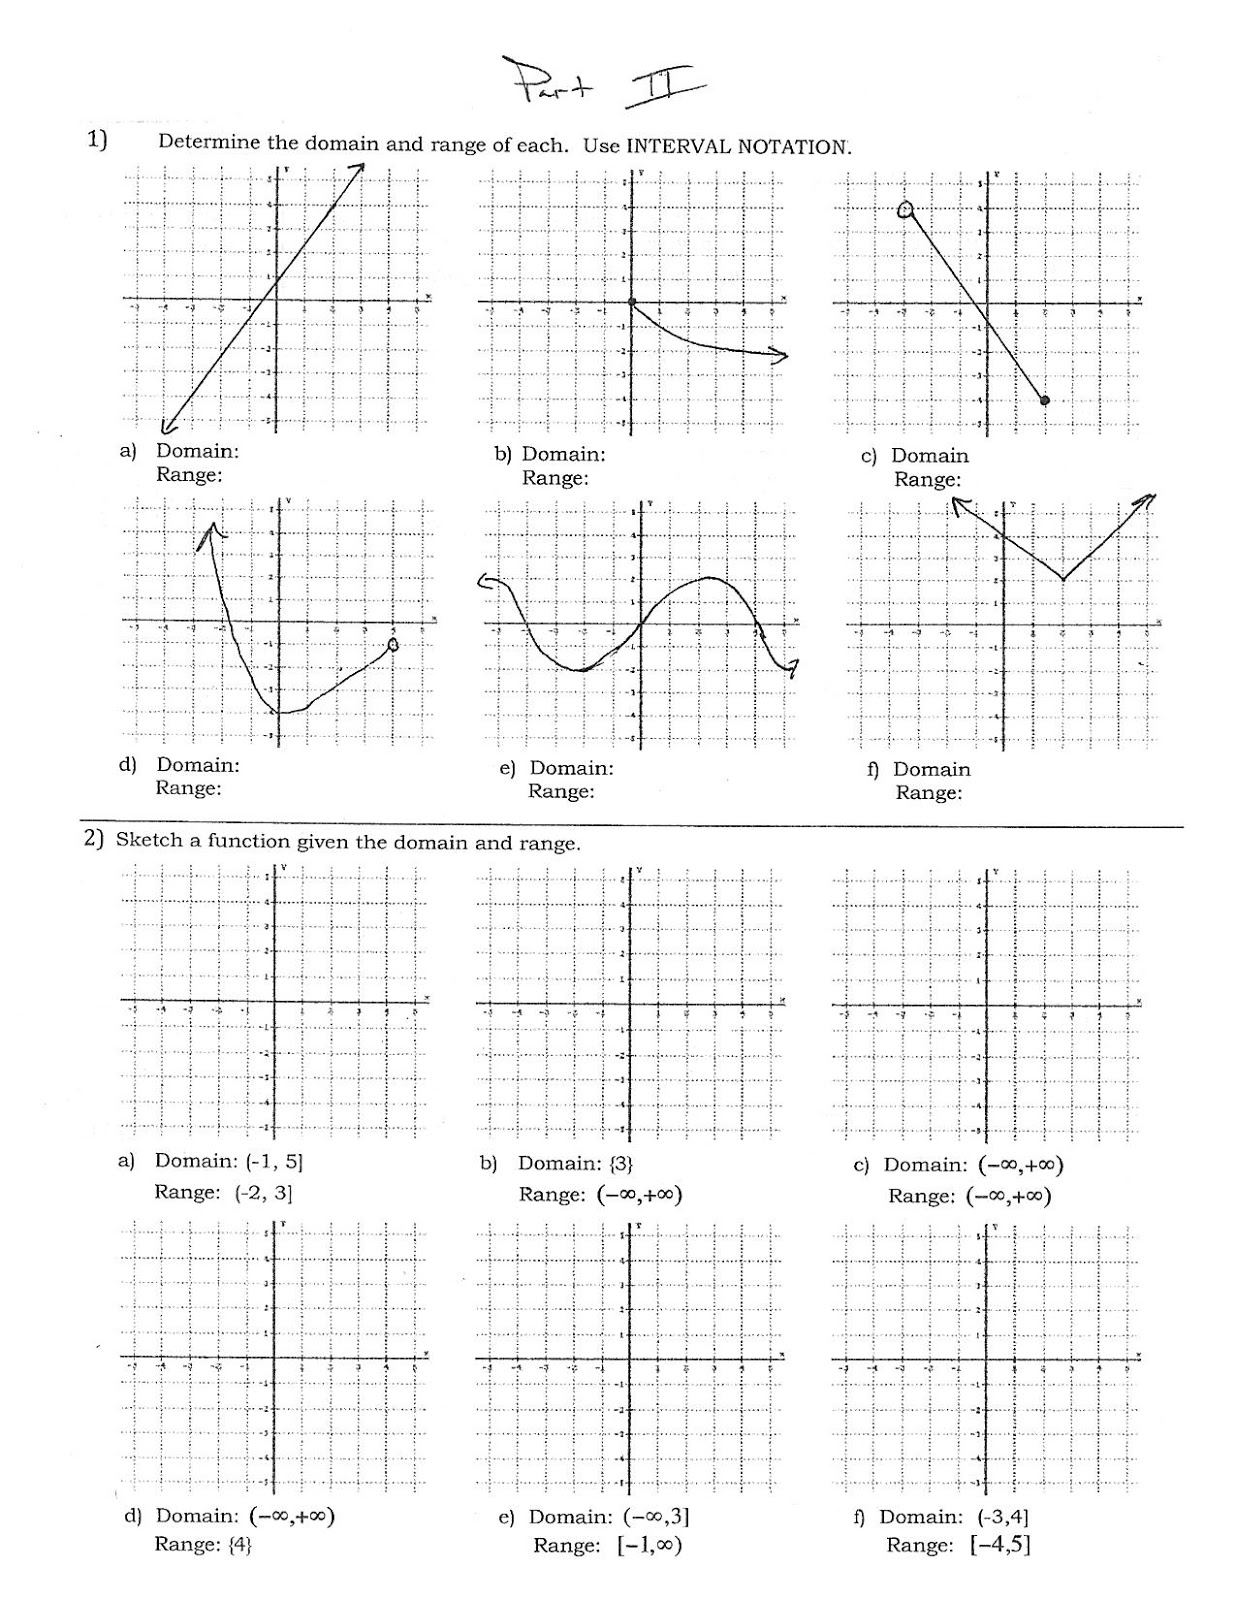 Printables Domain And Range Worksheets printables domain and range worksheets with answers fireyourmentor free printable pre calculus worksheet does taking adderall help you study for aqa maths past